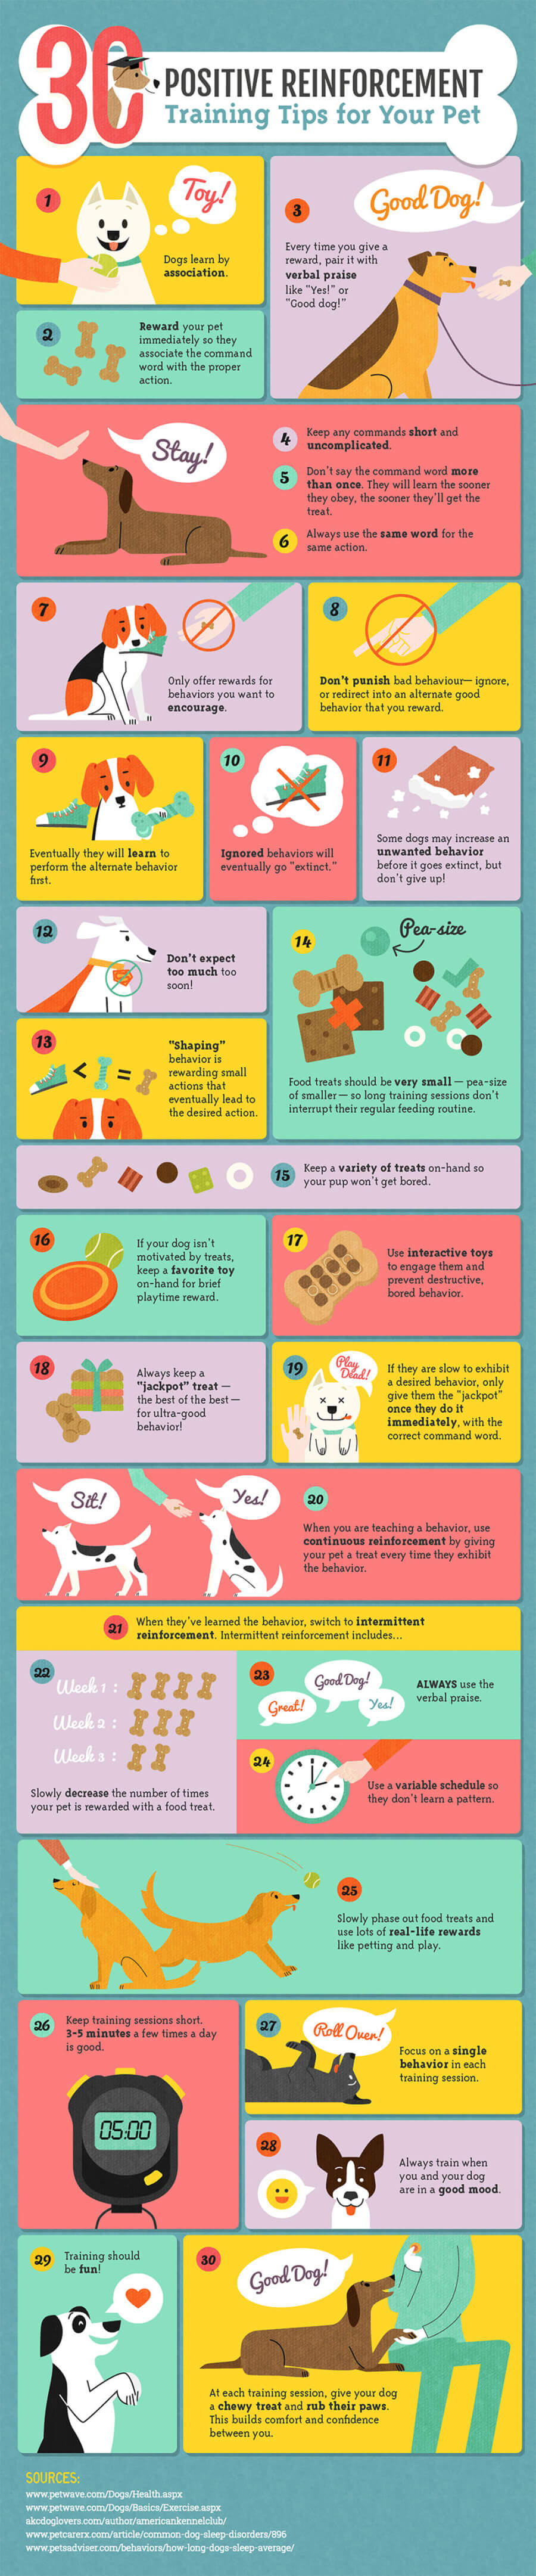 Infographic: Positive Reinforcement Pet Training Tips